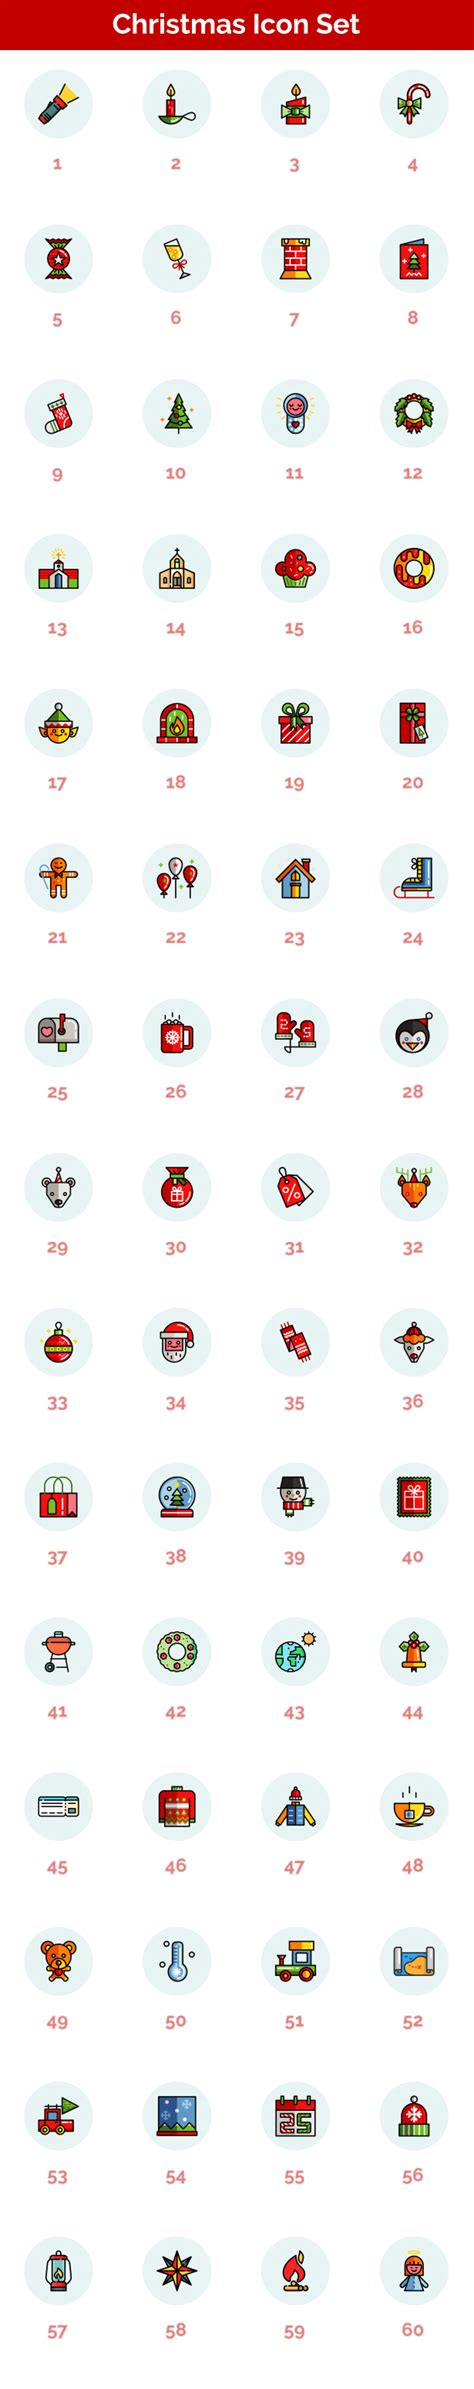 Christmas Holiday Icons Holidays After Effects Templates F5 Design Com Bourne Identity Style Free After Effects Template